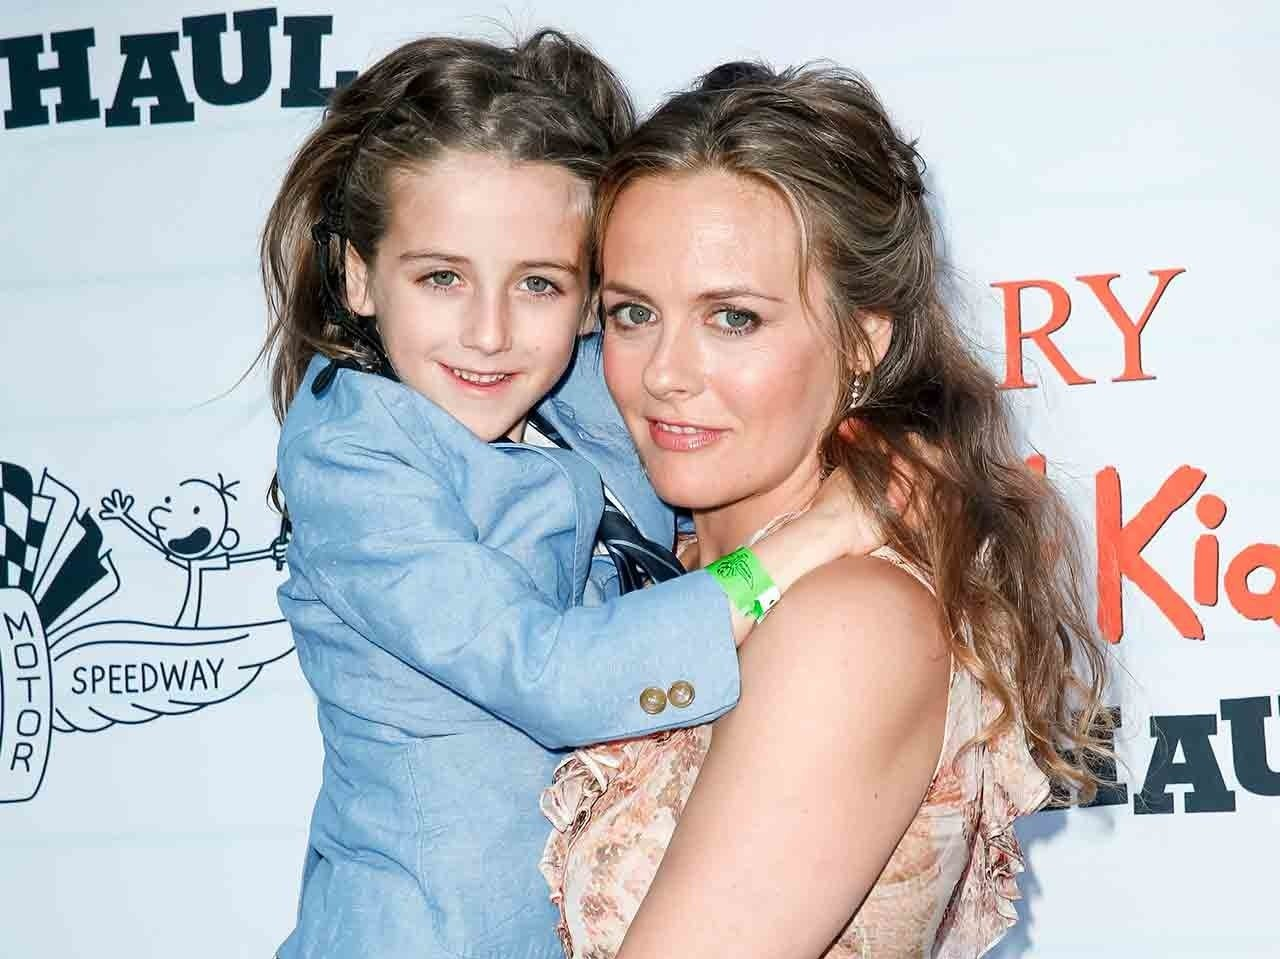 Alicia Silverstone carrying her son, they both are looking at the camera.